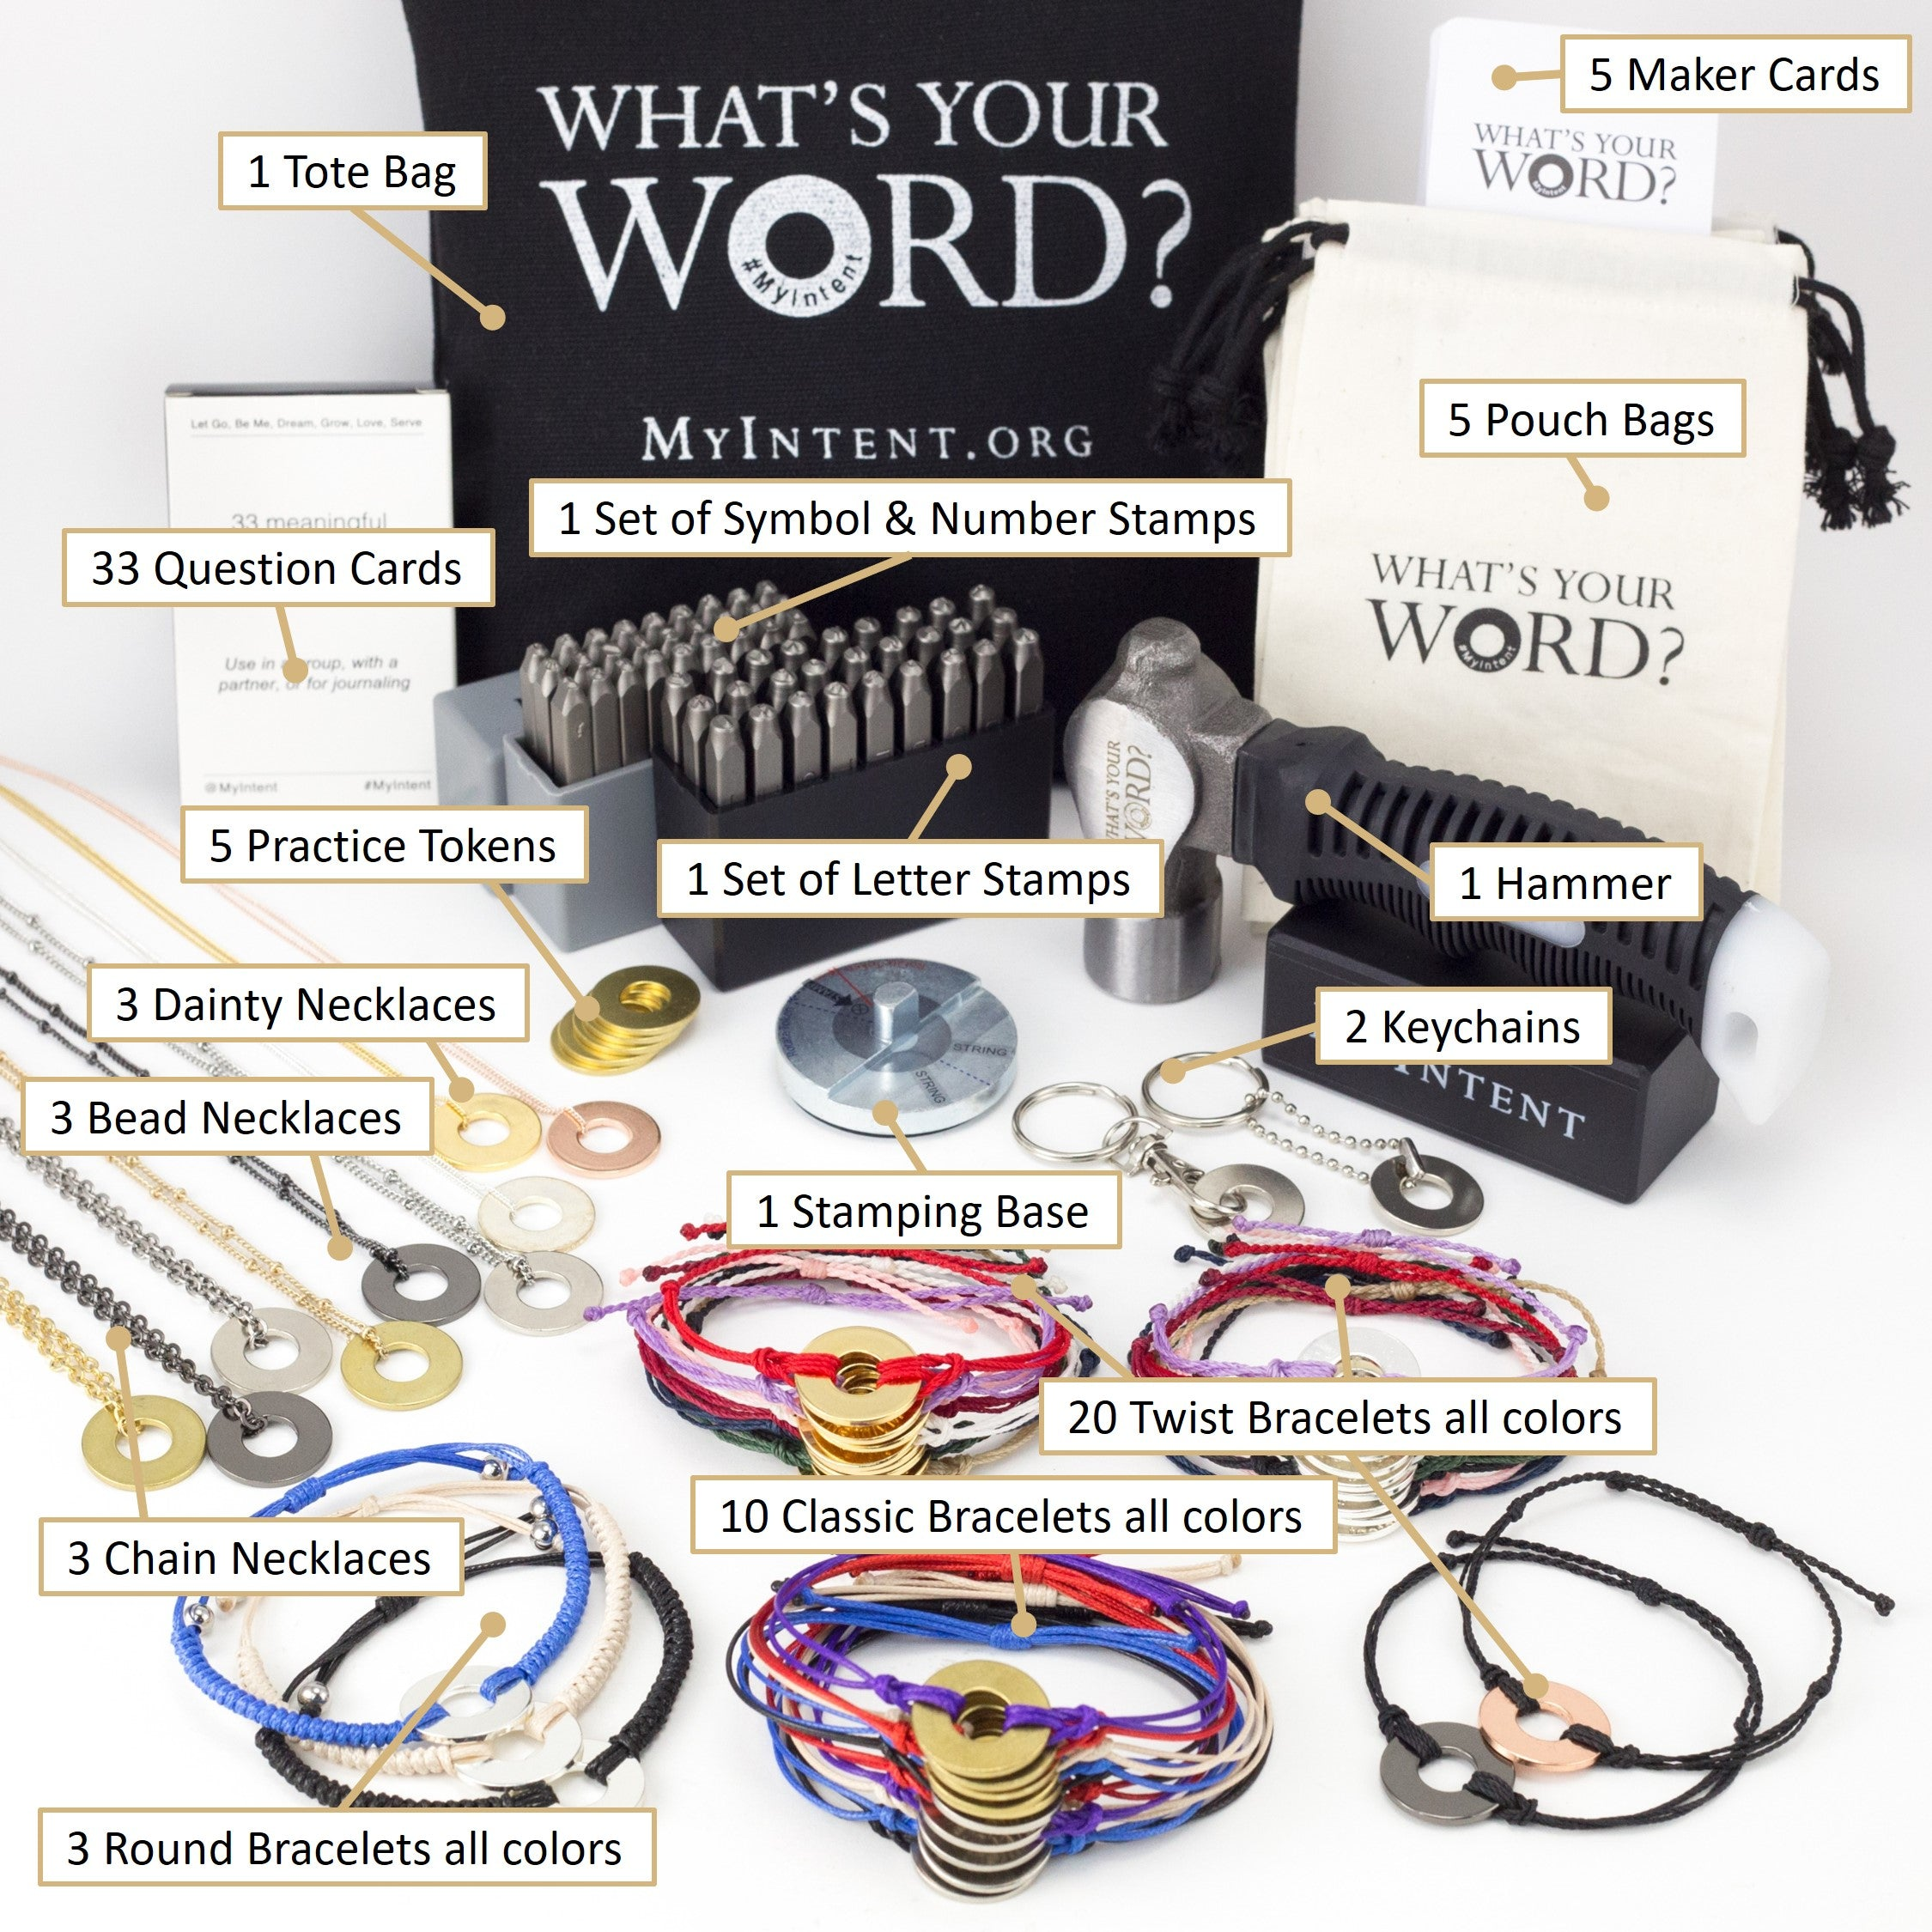 MyIntent Mega Maker Kit has all 33 bracelets, all 9 necklaces, and 2 nickel keychain & symbol stamps